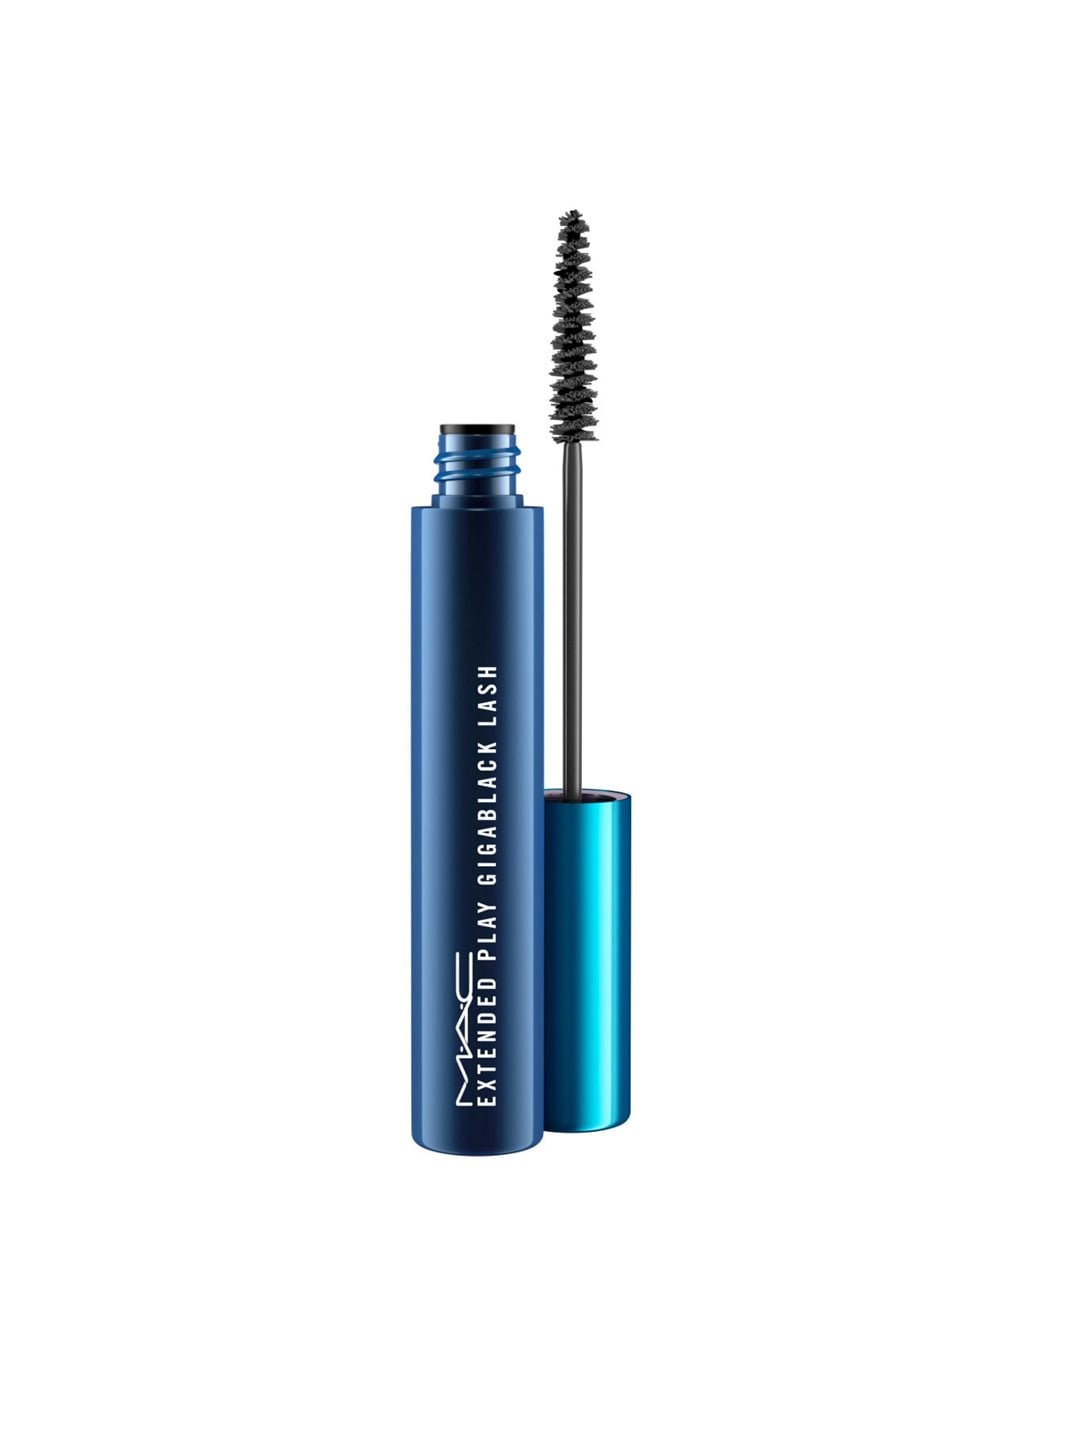 M.A.C Extended Play Gigablack Lash Mascara image